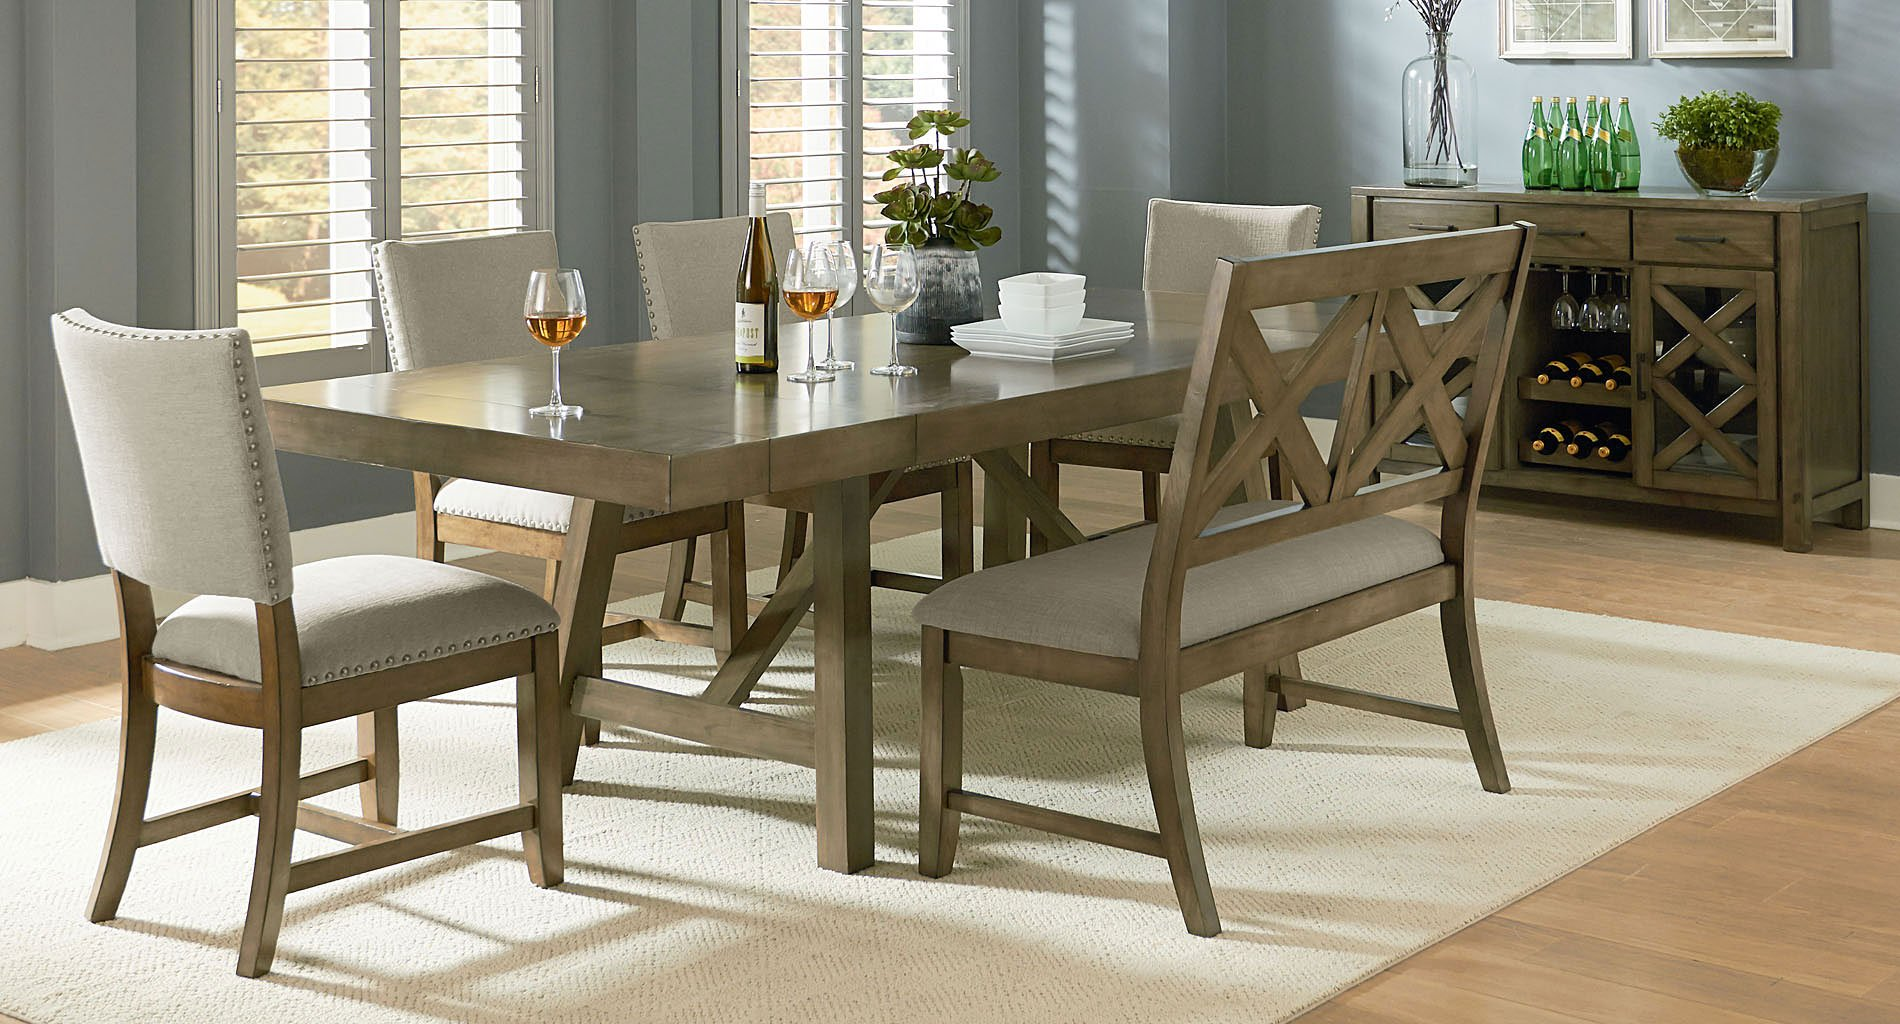 Omaha Dining Room Set W Bench And Upholstered Chairs